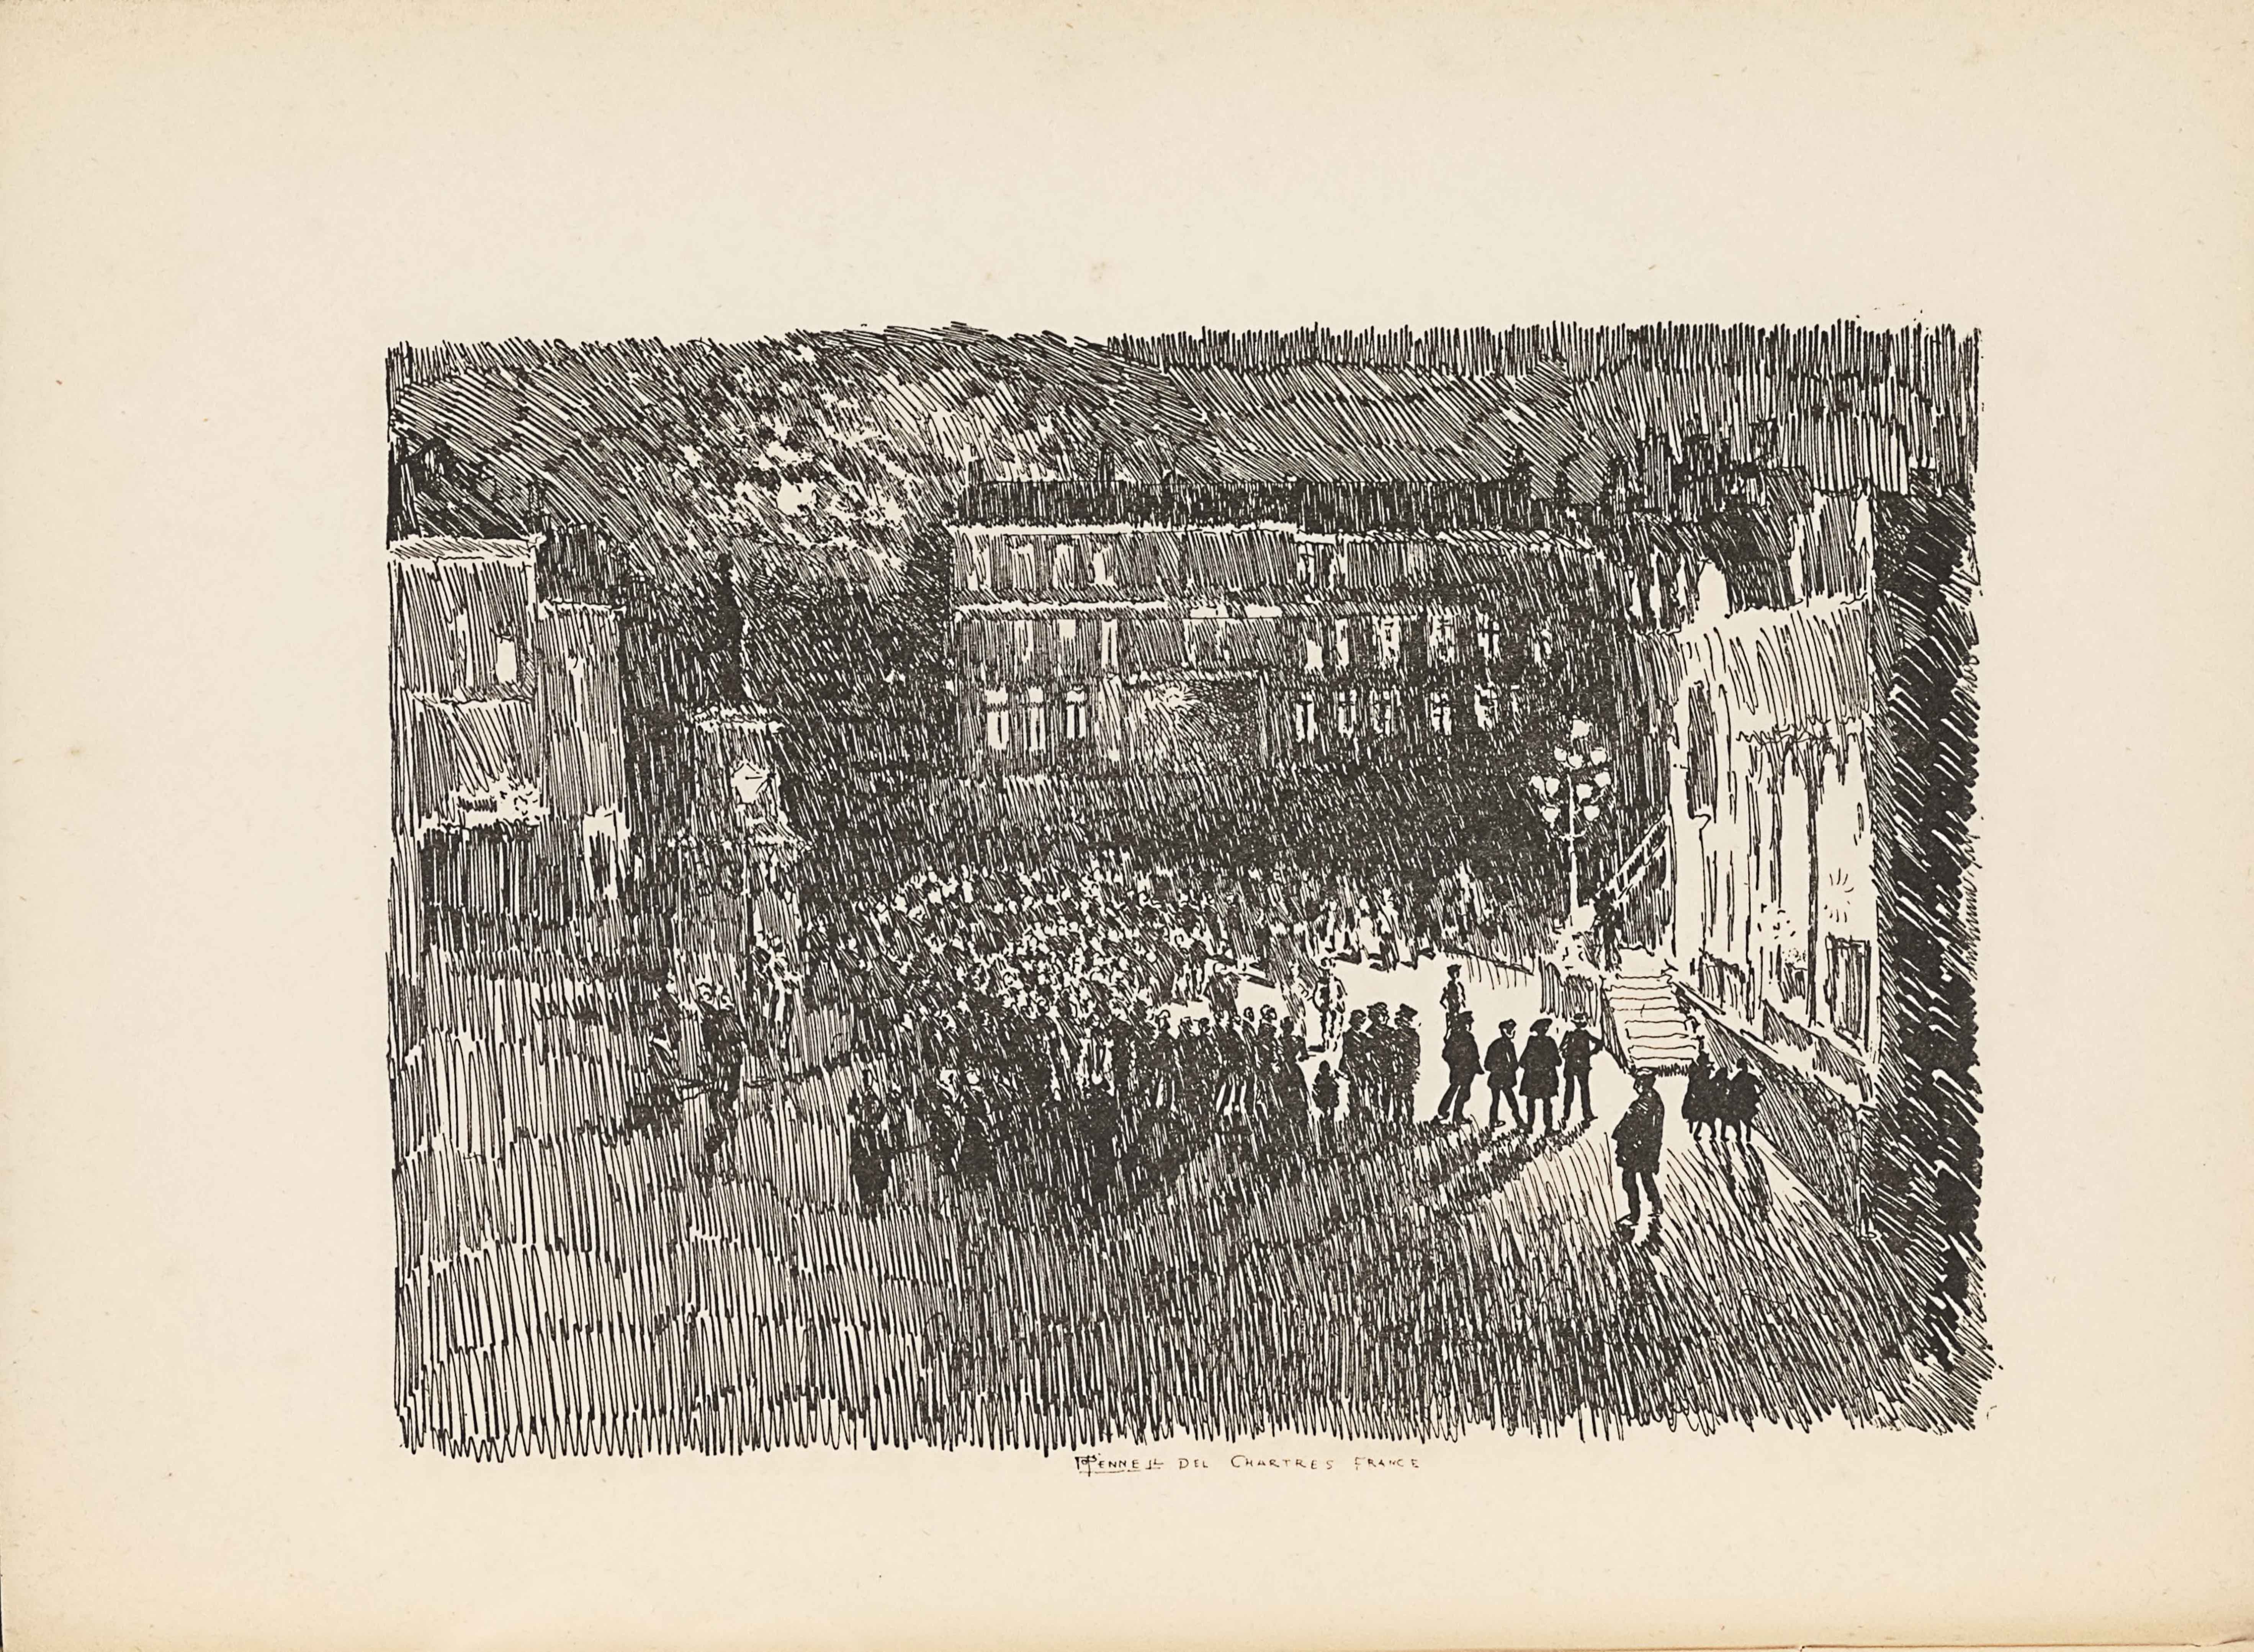 "The line-block reproduction of a pen-and-ink drawing by Joseph Pennell is in landscape orientation. The image shows a city square with a gathering of people facing a person standing up on a staircase. There is a darkness to the image because of the drawing style, which is comprised of a series of vertical and diagonal lines drawn in a hatching formation. On the left side of the image is a series of vaguely outlined buildings, which reach up to three-quarters the height of the page. Slightly to the right of the buildings is a clock tower with a tall pointed roof. To the right of the clock tower is a group of people standing, visible by their light and circular heads between dark vertical lines. The group is formed in a semi-circle and turned to face towards the right side of the image. In the background of the group is a row of buildings in a horizontal line across the top third of the page. The buildings have three floors with a window appearing at each floor height and consistently all the way across horizontally. The buildings are all conjoined and have a shared black roof. The semi-circle formation of people on the ground are lit by a tall street lamp with about six lights. The light is beside the steps that lead to the front of a building that takes up the height of the right side of the page. A person standing on the steps appears as a dark figure underneath the lamp. There is a small group of people standing in front of the steps on the foreground side away from the rest of the large group. The building on the right side of the page is the only light coloured building in the area. The dark foreground is, made entirely of hatched and vertical lines. The background behind the buildings is made of a series of hatched vertical lines as well, but these are closer together and darker. There is no borderline around the outside edge of the image. The image edges are instead made of vertical lines ending roughly in a straight line. Centered underneath the image is the text: ""JPENNELL DEL CHARTRES FRANCE"" [caps]."